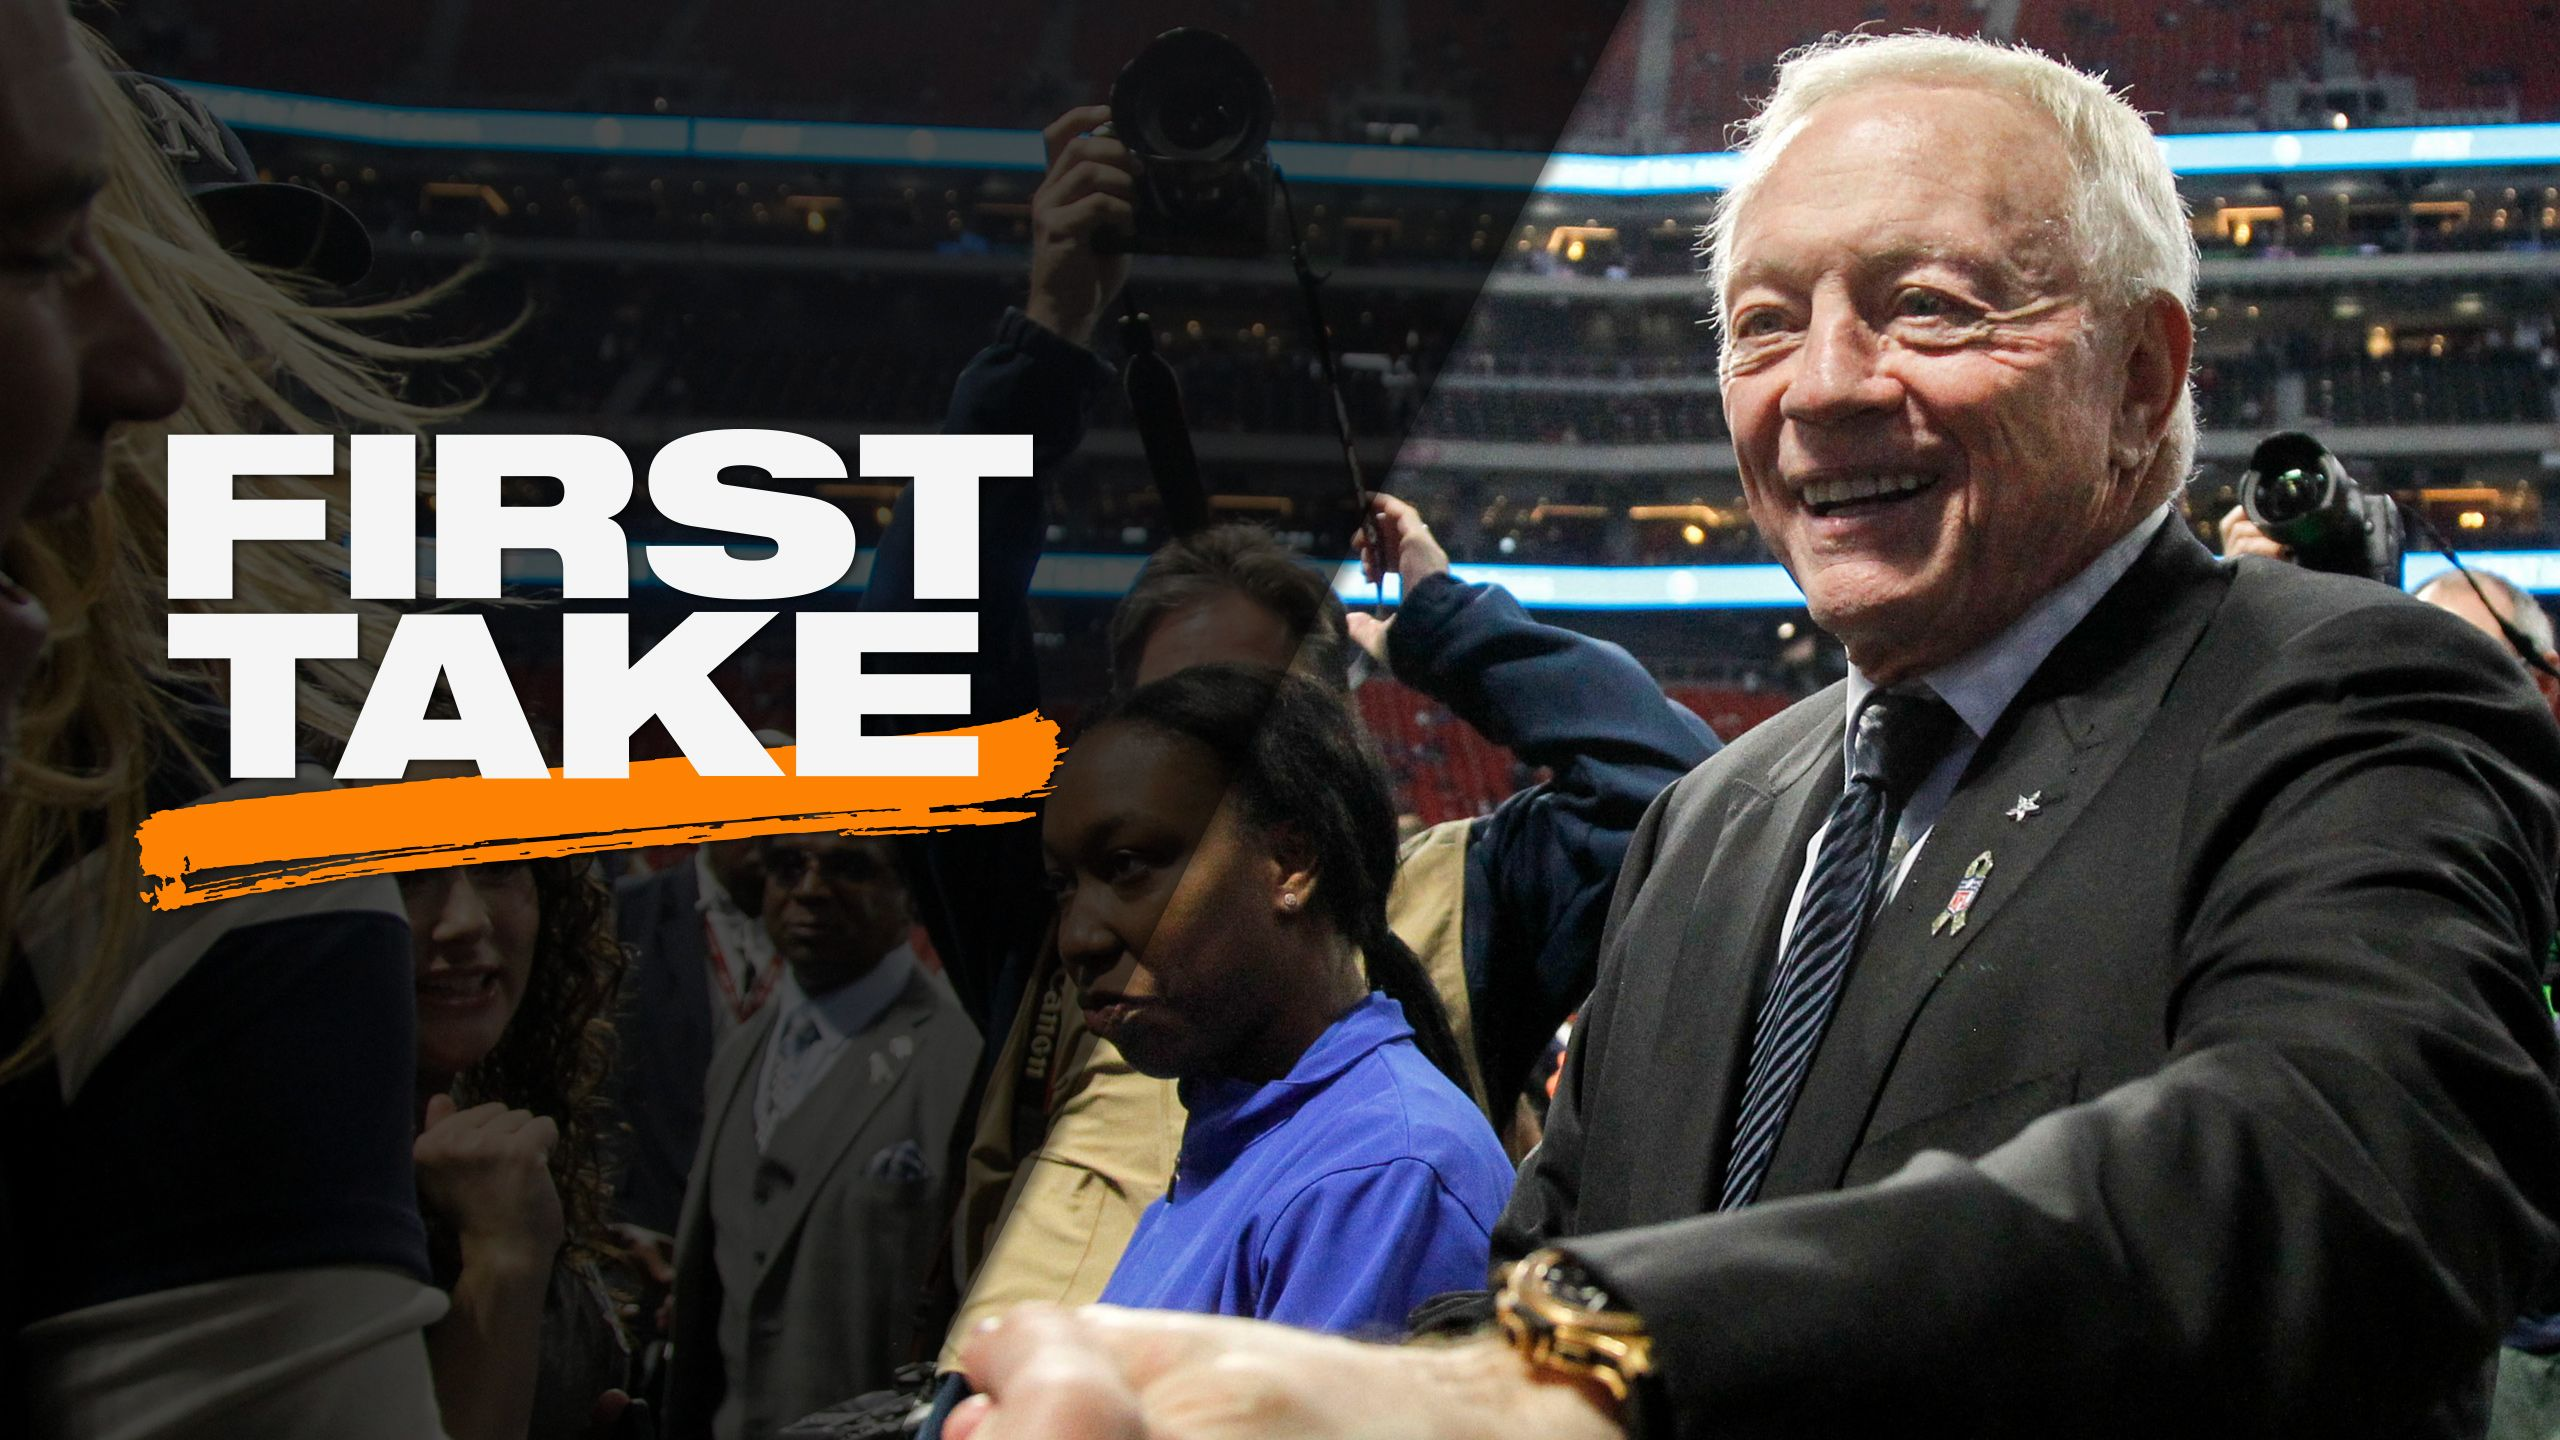 Fri, 11/17 - First Take